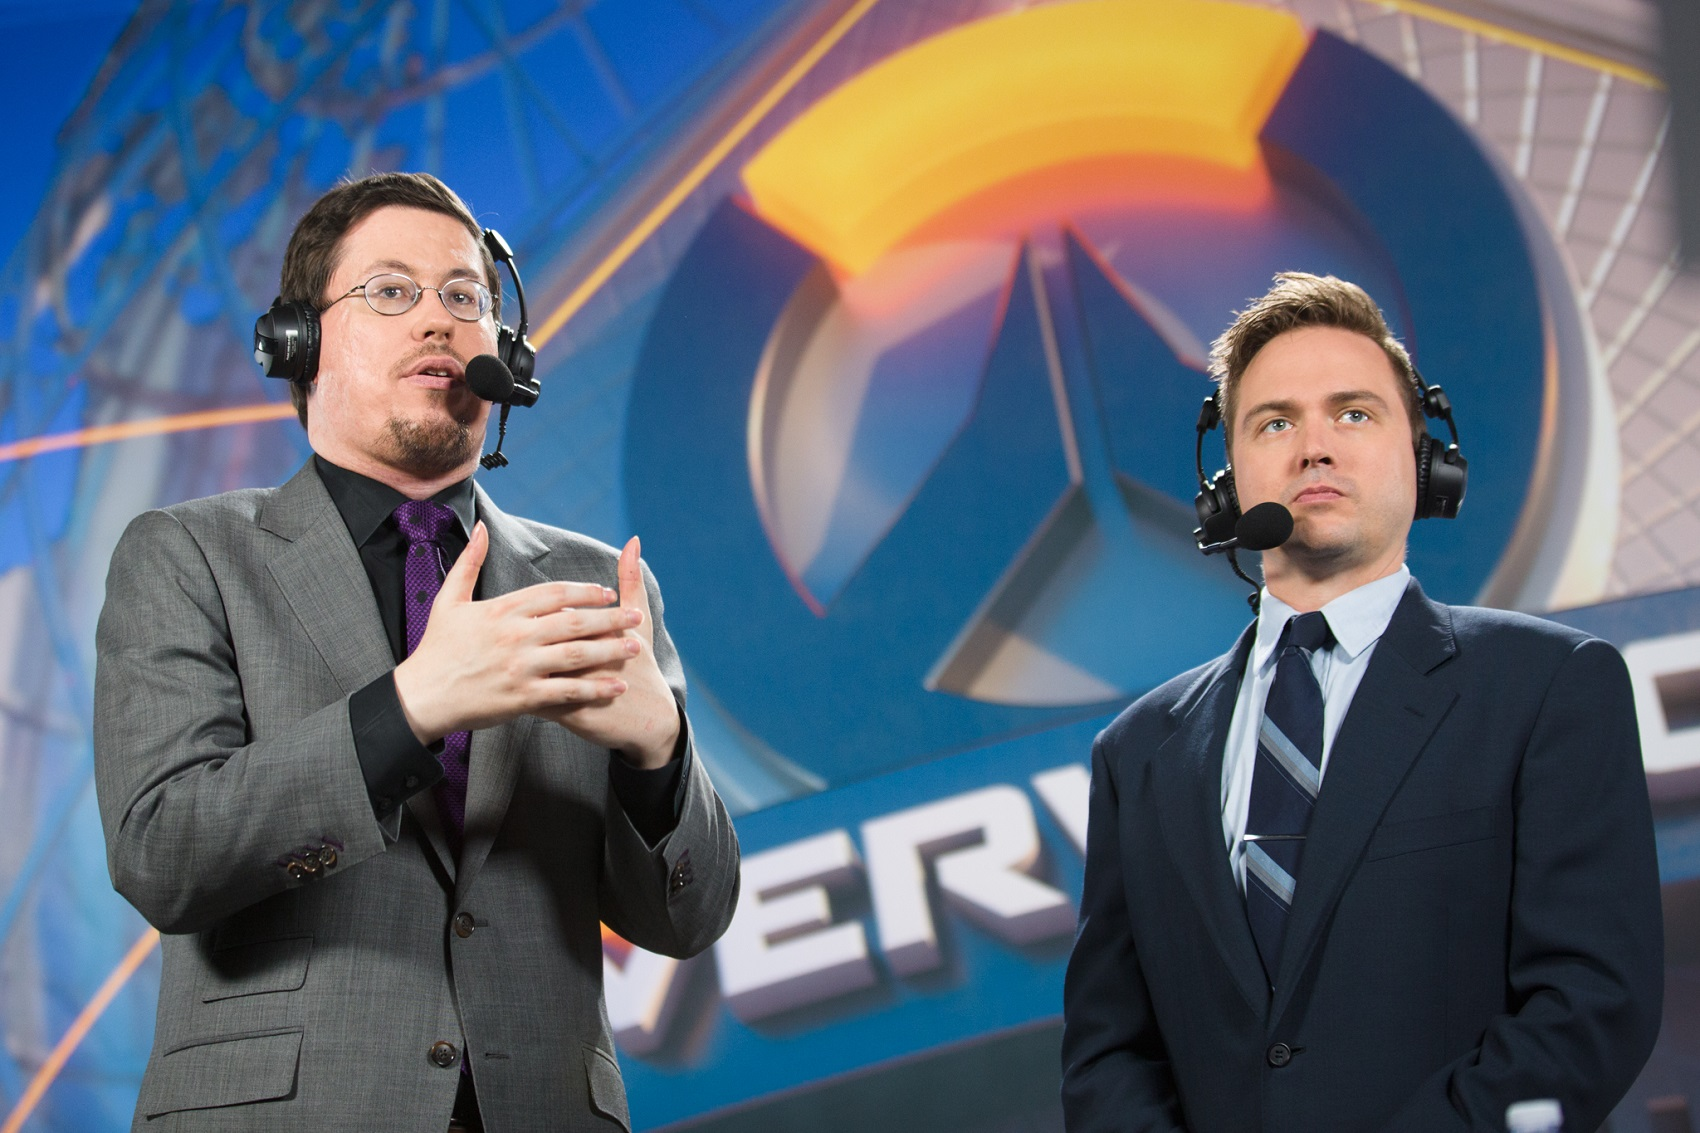 Blizzard is holding a casting call for Overwatch on-air talent | Dot